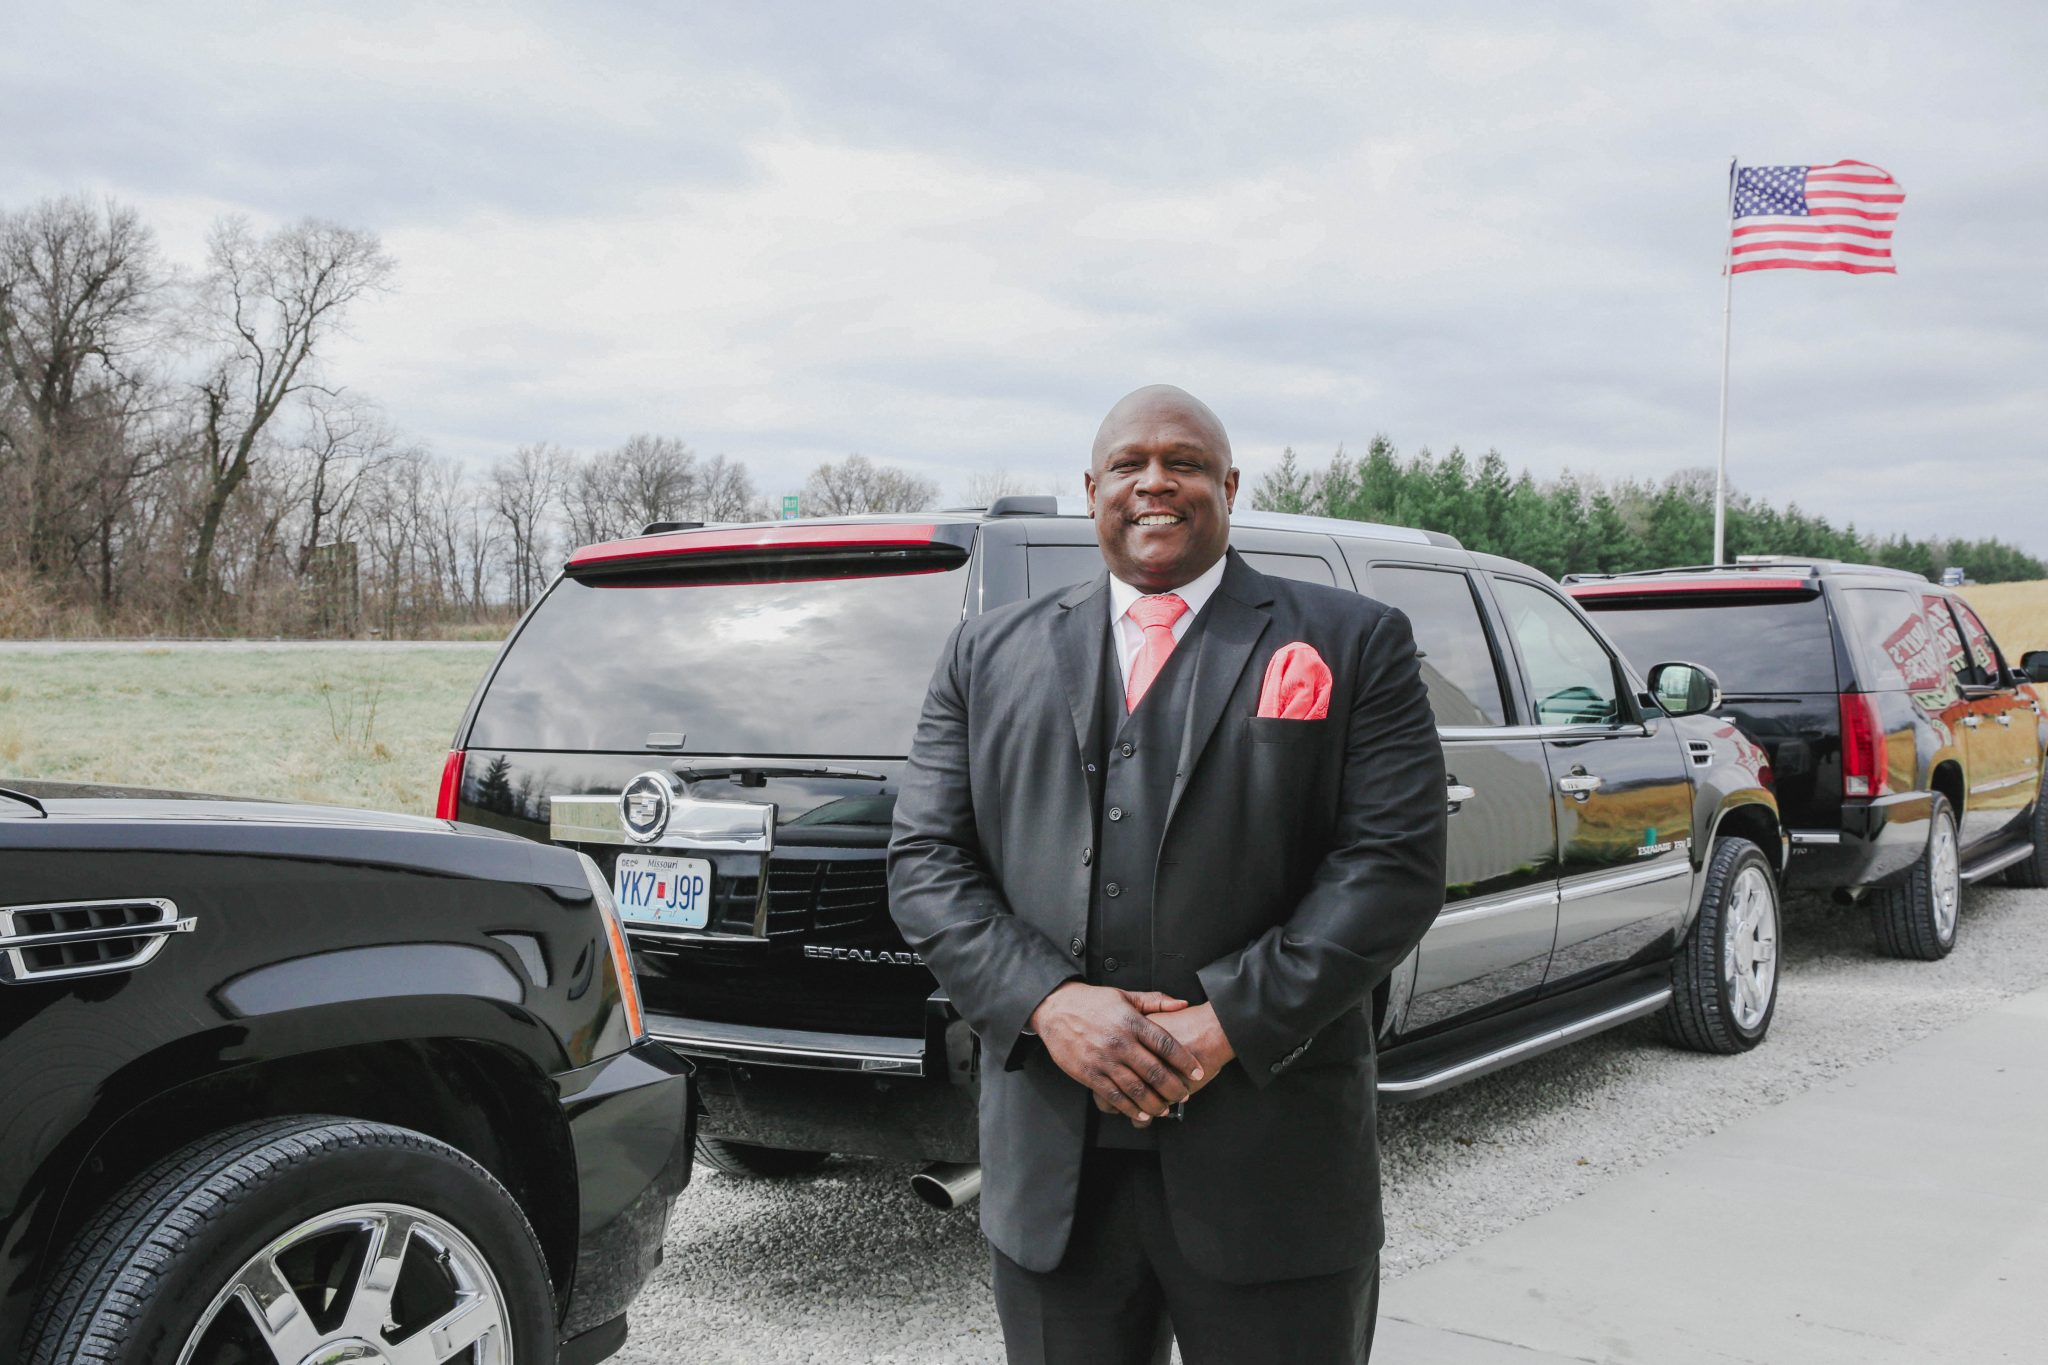 Providing Executive-style transportation in luxury SUVs and limo buses.